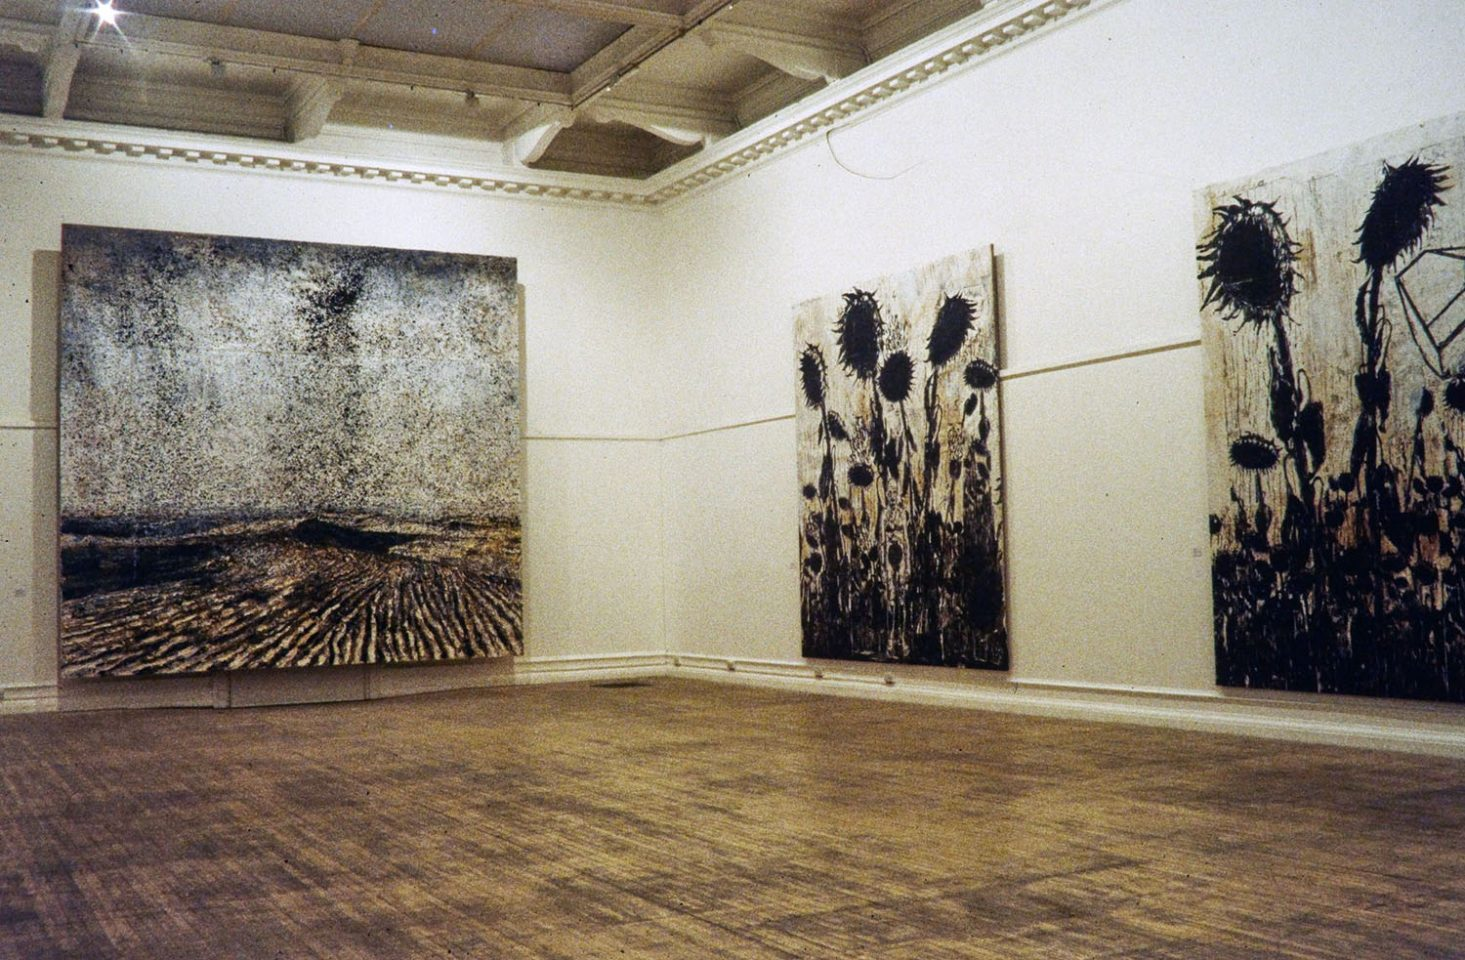 Anselm Kiefer: I Hold All the Indias In My Hand